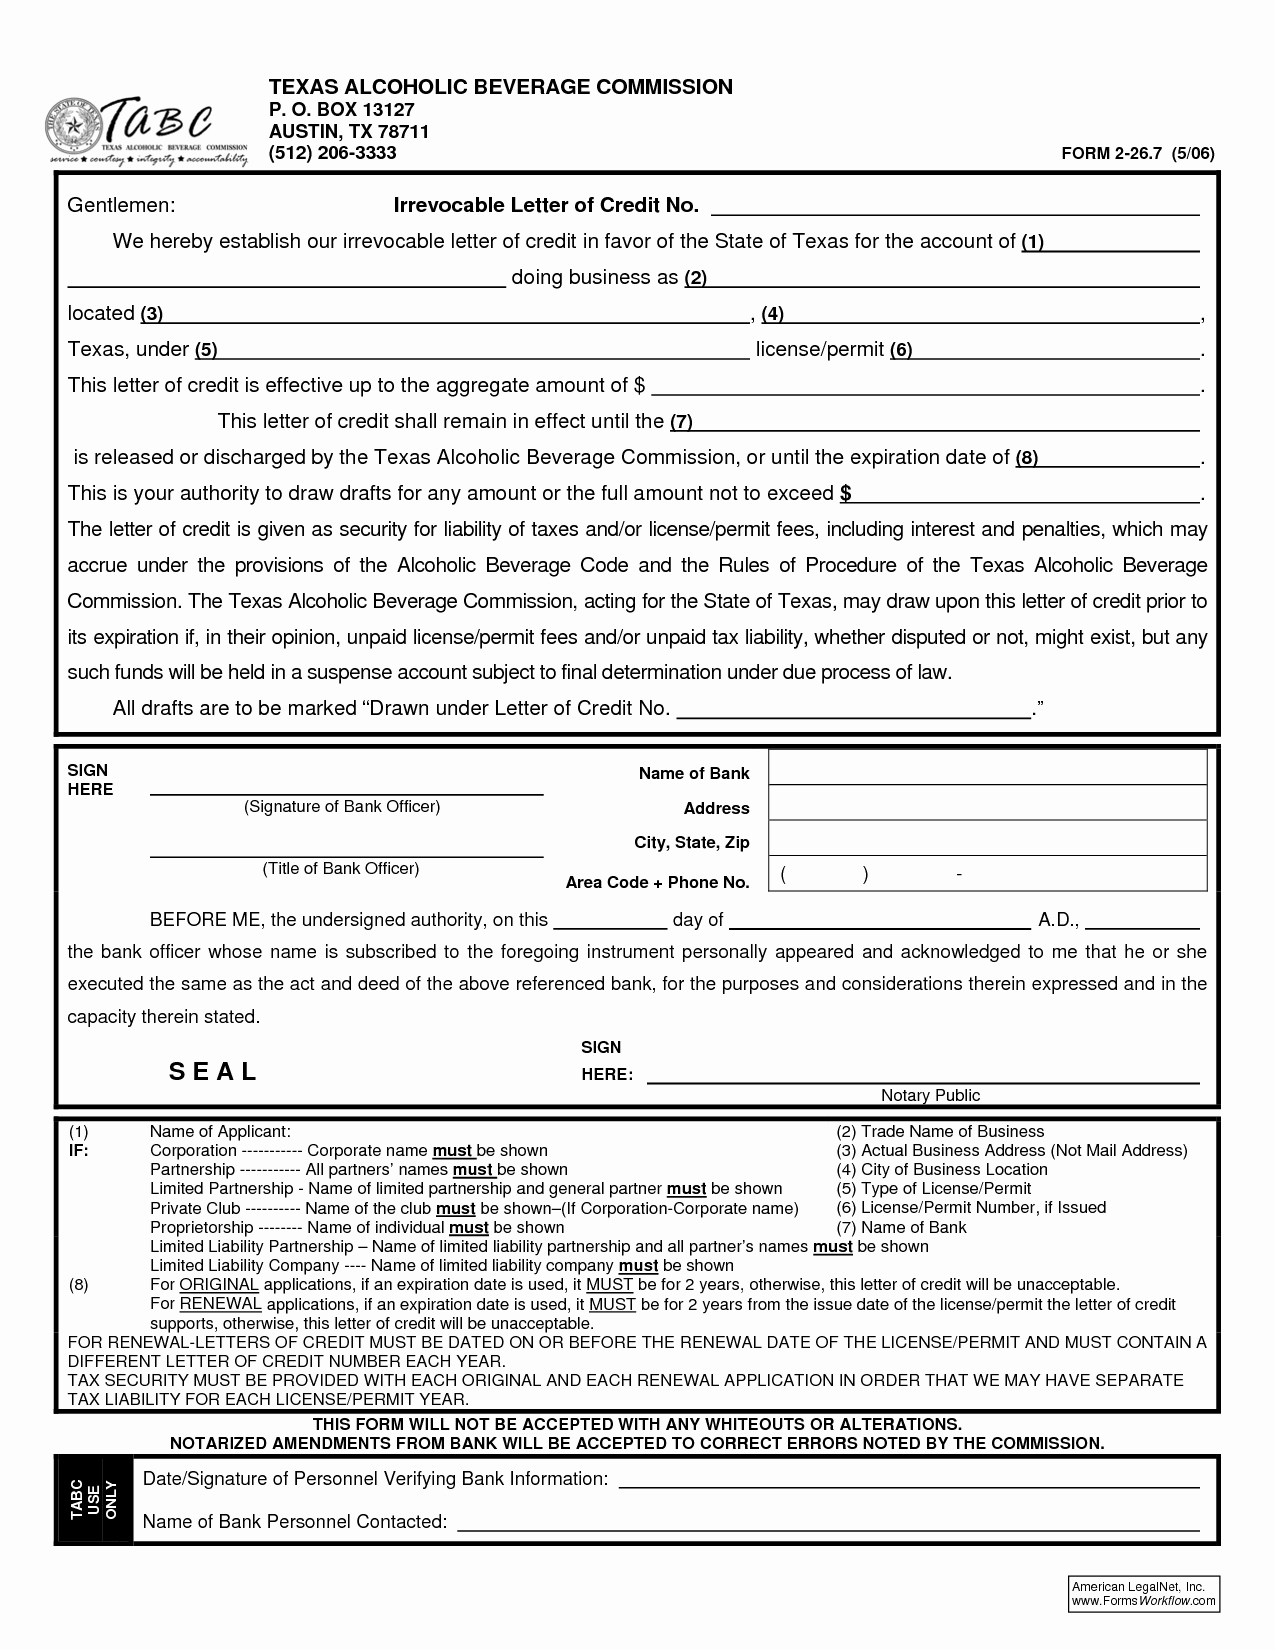 Letter Of Credit Template New Irrevocable Letter Credit